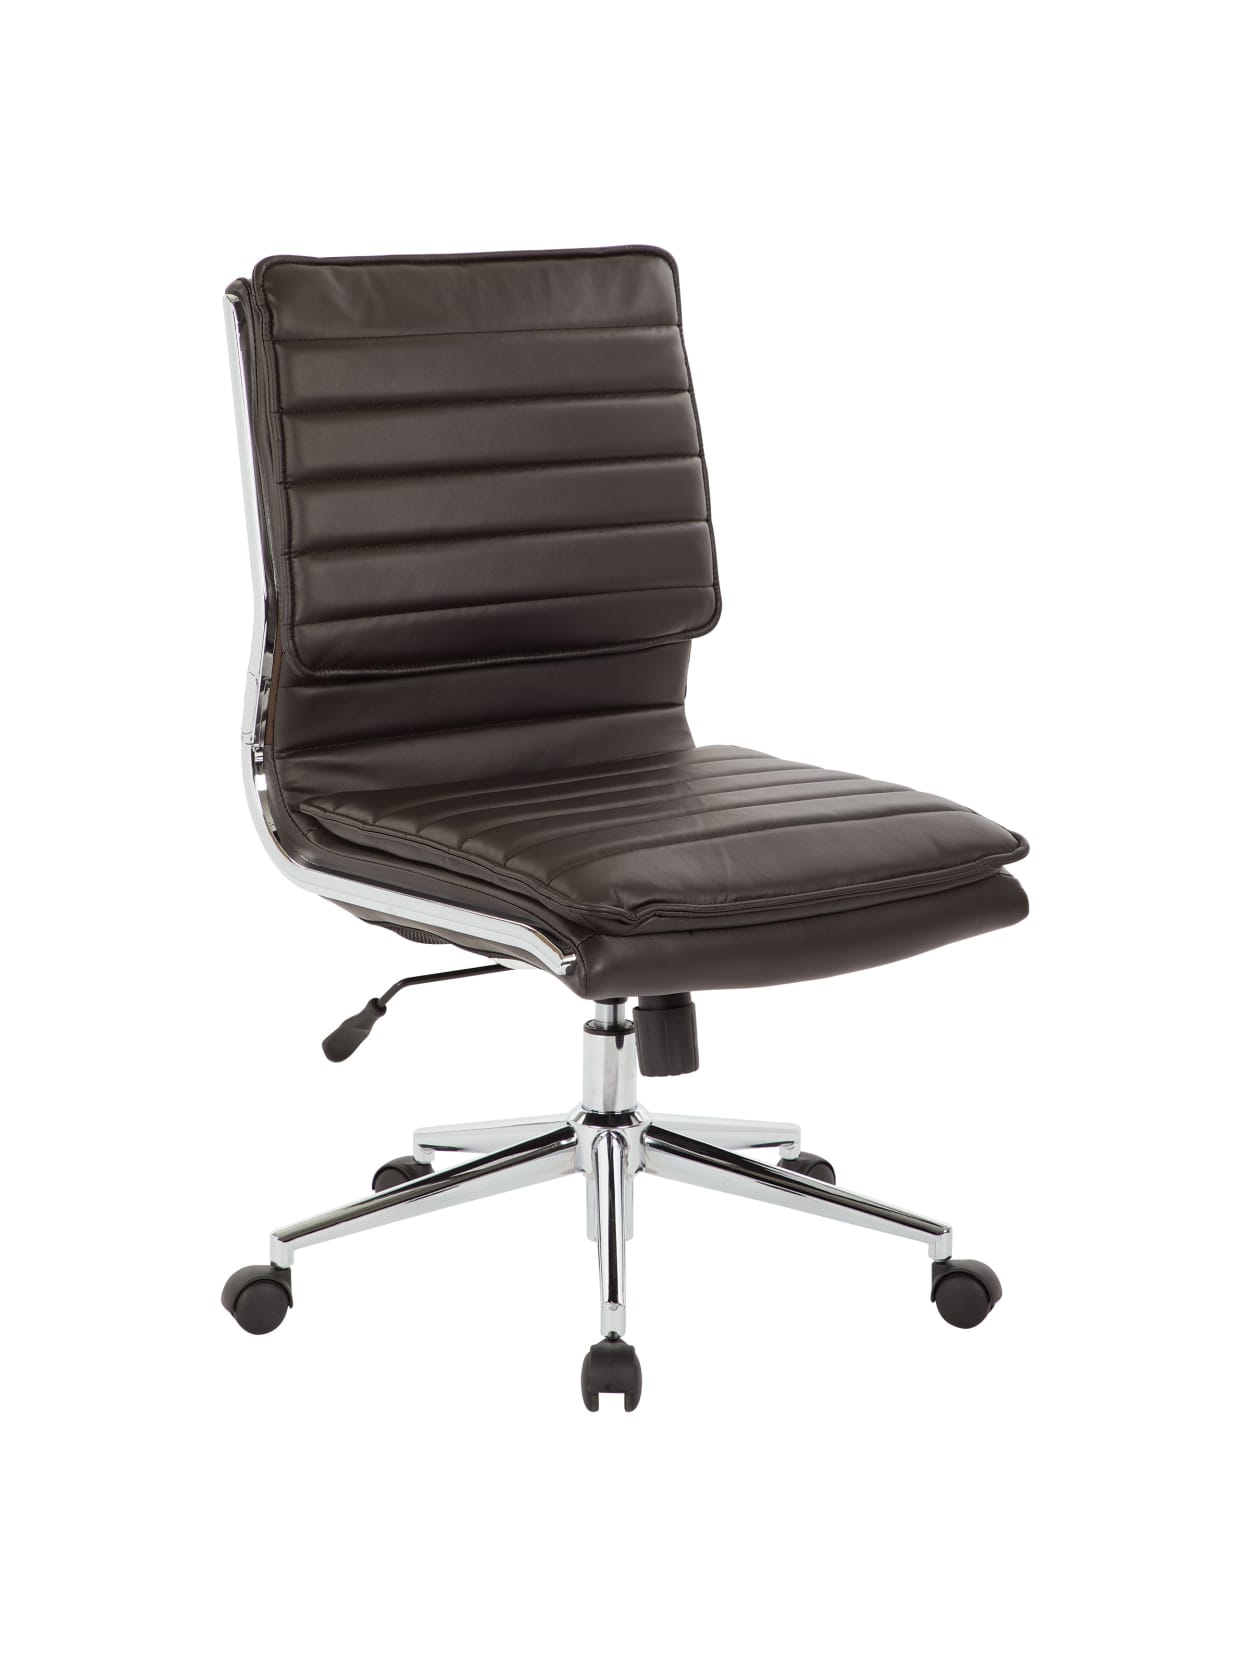 Office Star Pro Line Ii Spx Armless Bonded Leather Mid Back Chair Espressochrome Office Depot